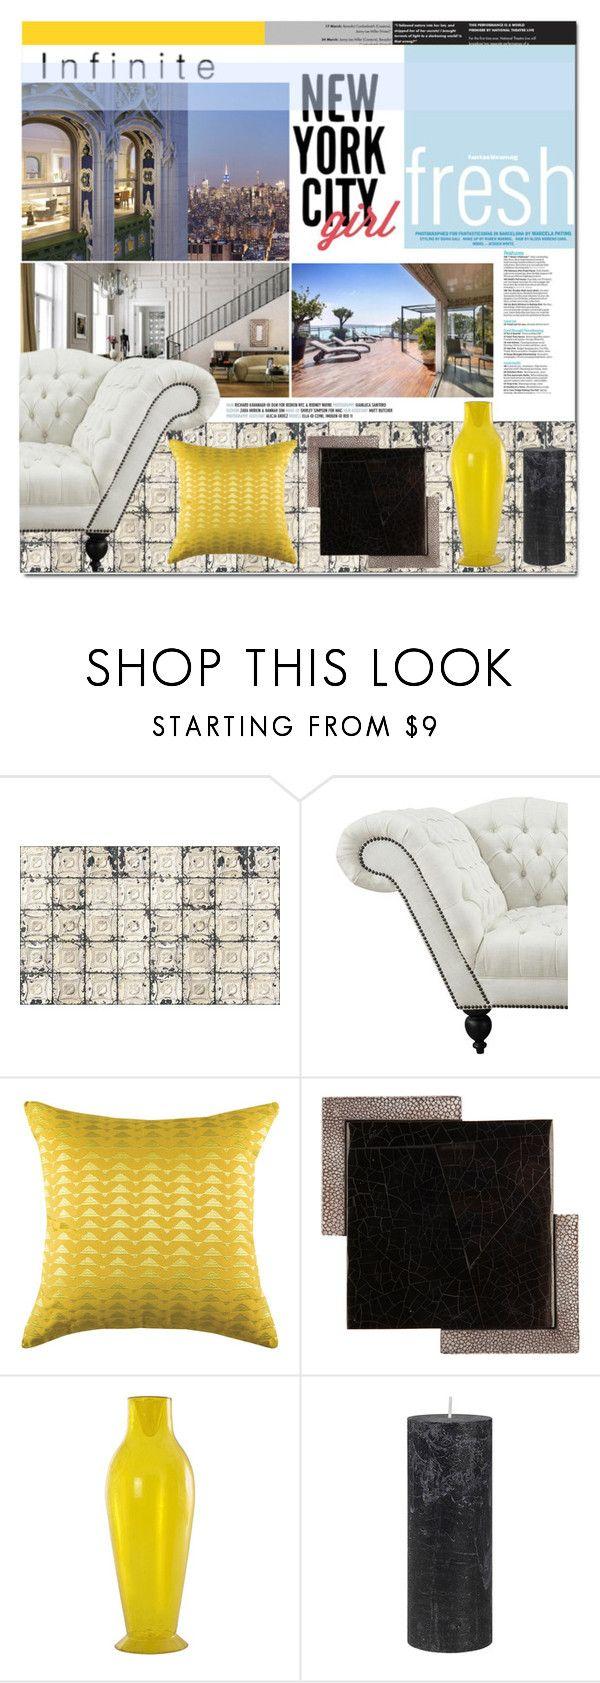 Infinite skies by yoa316 on Polyvore featuring interior, interiors, interior design, home, home decor, interior decorating, Ginger Brown, KAS, Kartell and DAY Birger et Mikkelsen